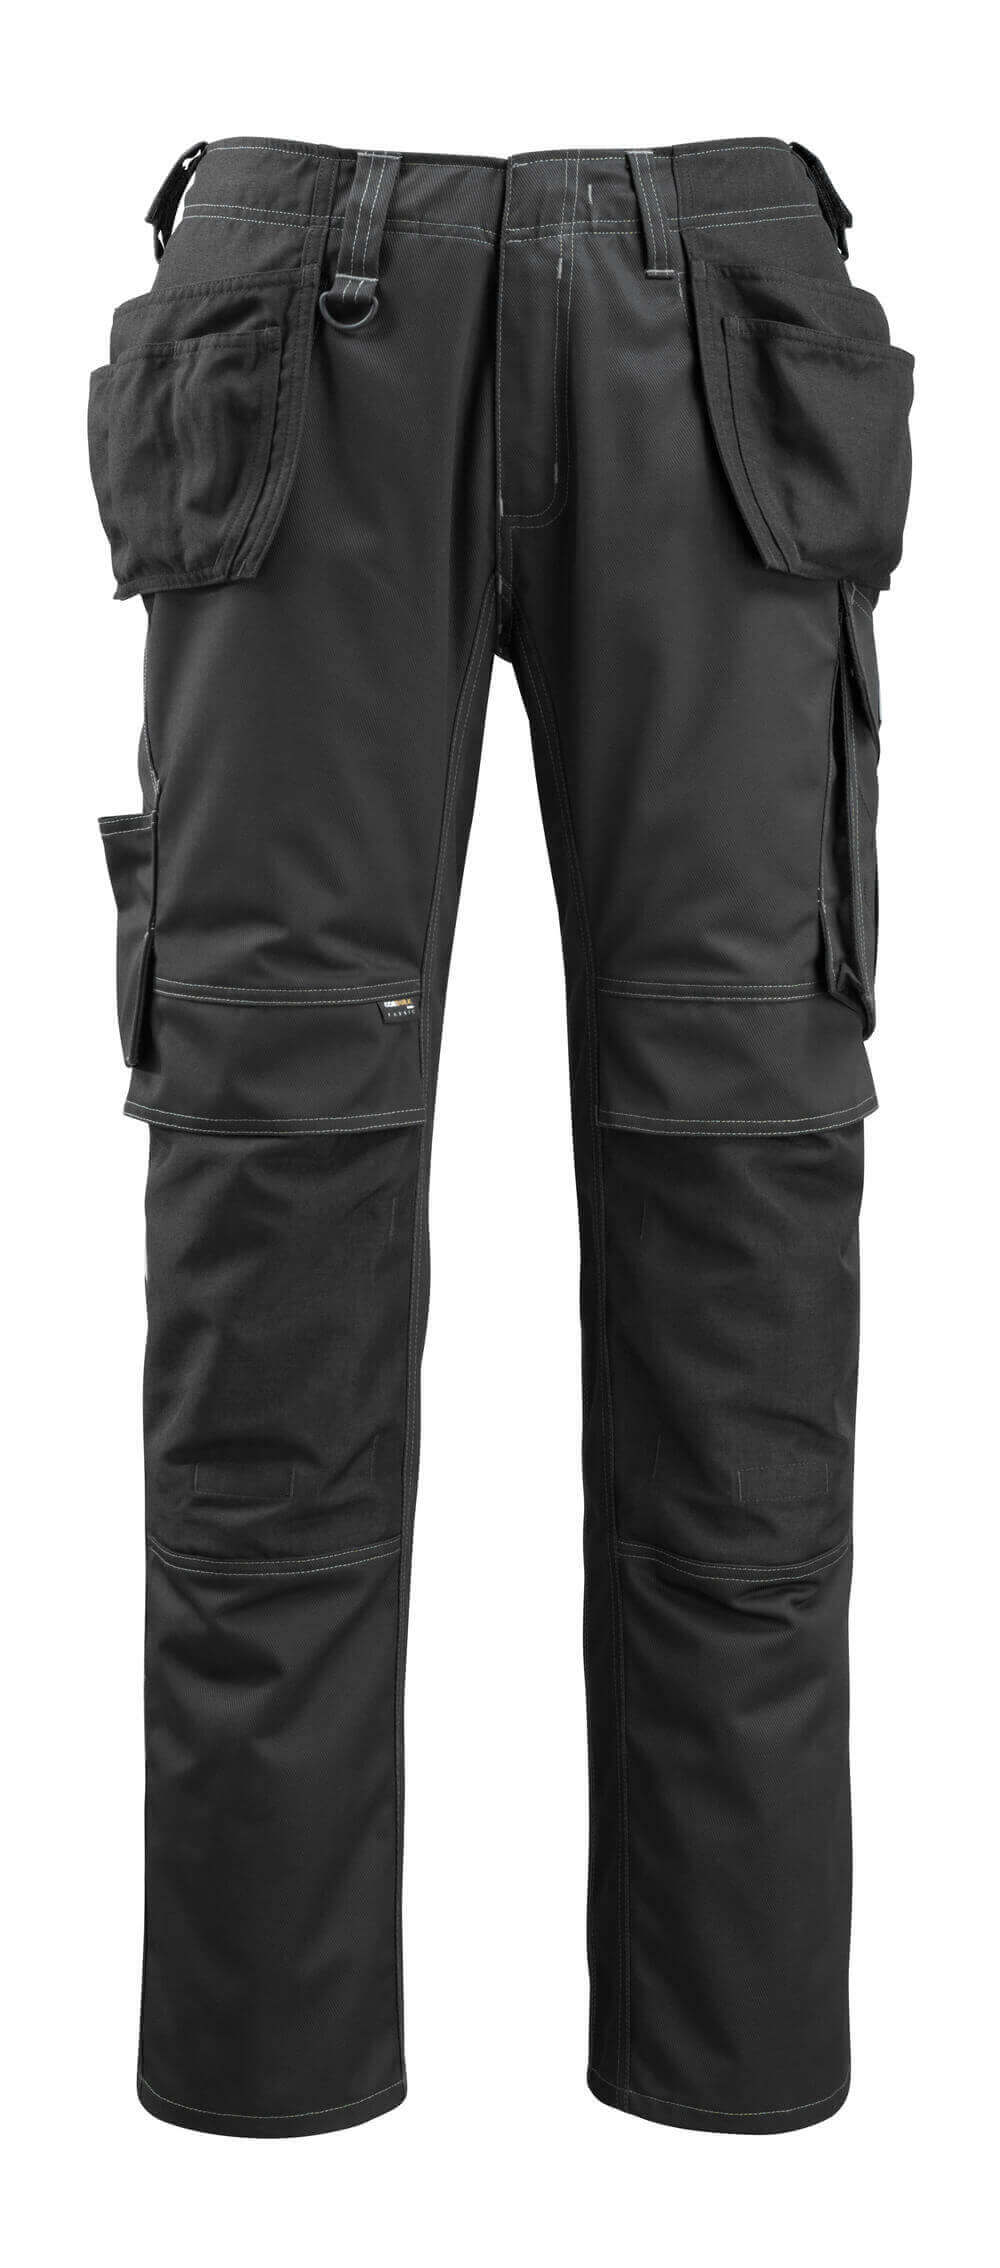 14131-203-09 Trousers with holster pockets - black